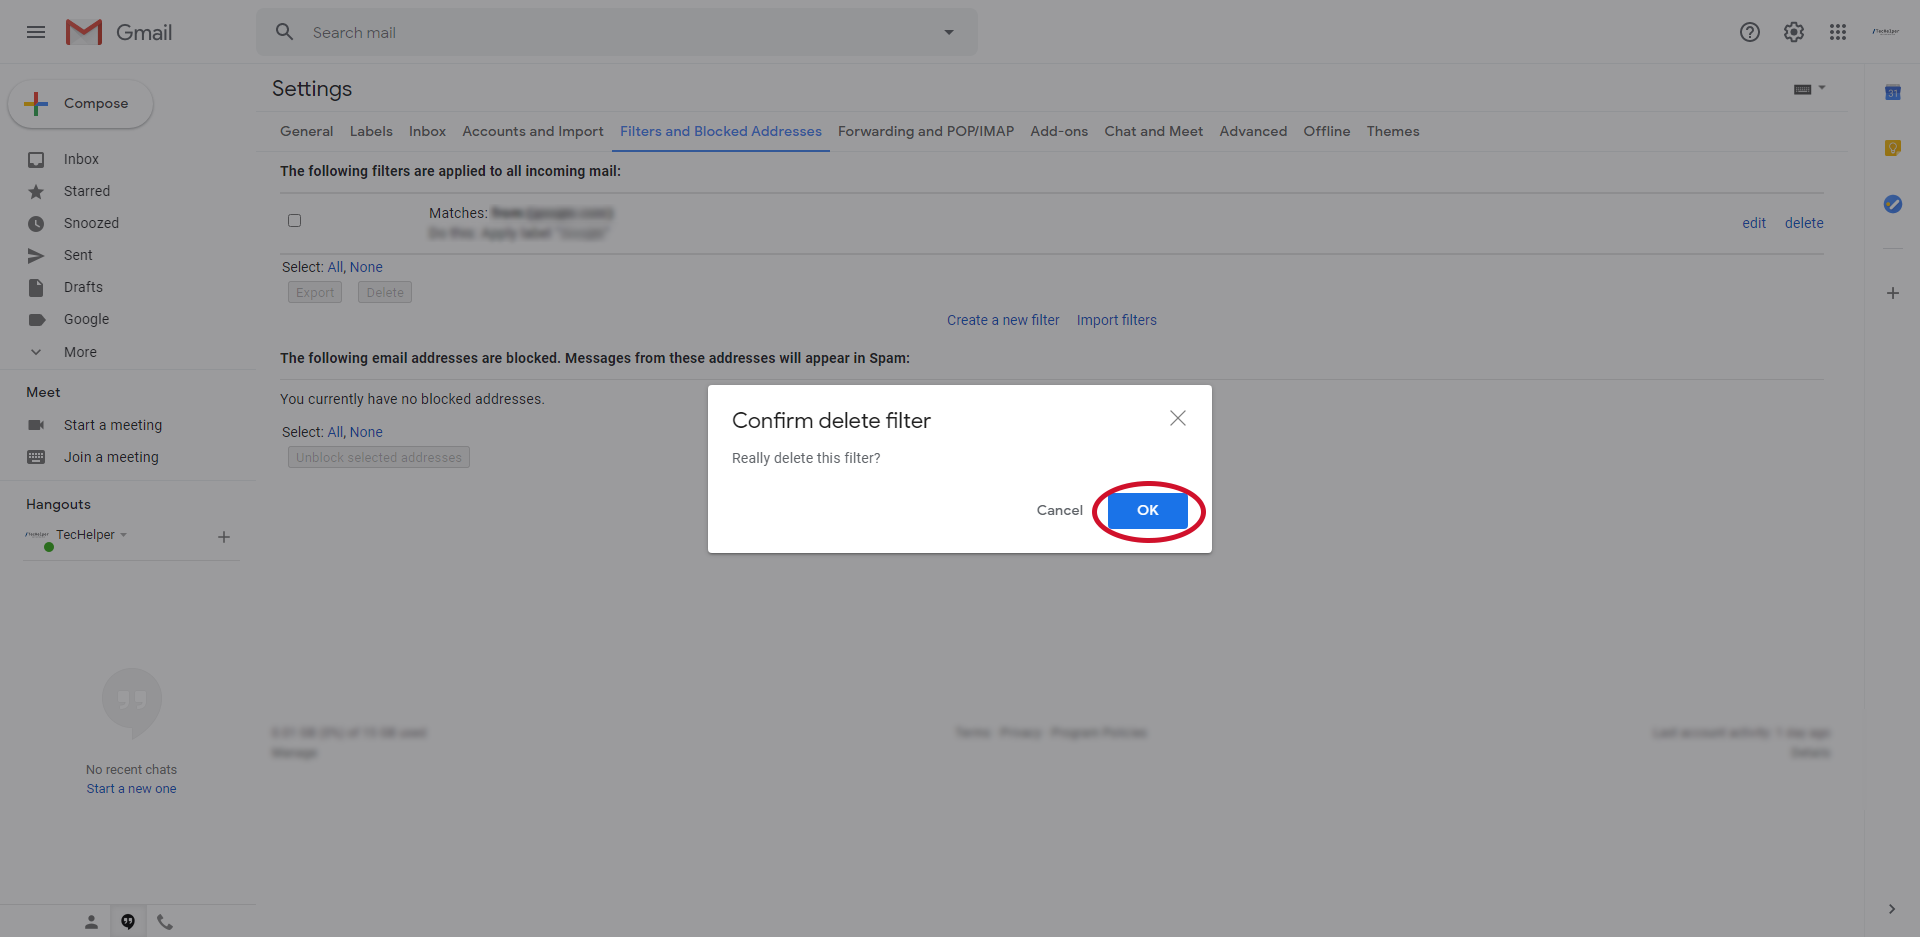 gmail edit or delete filter step 4b1